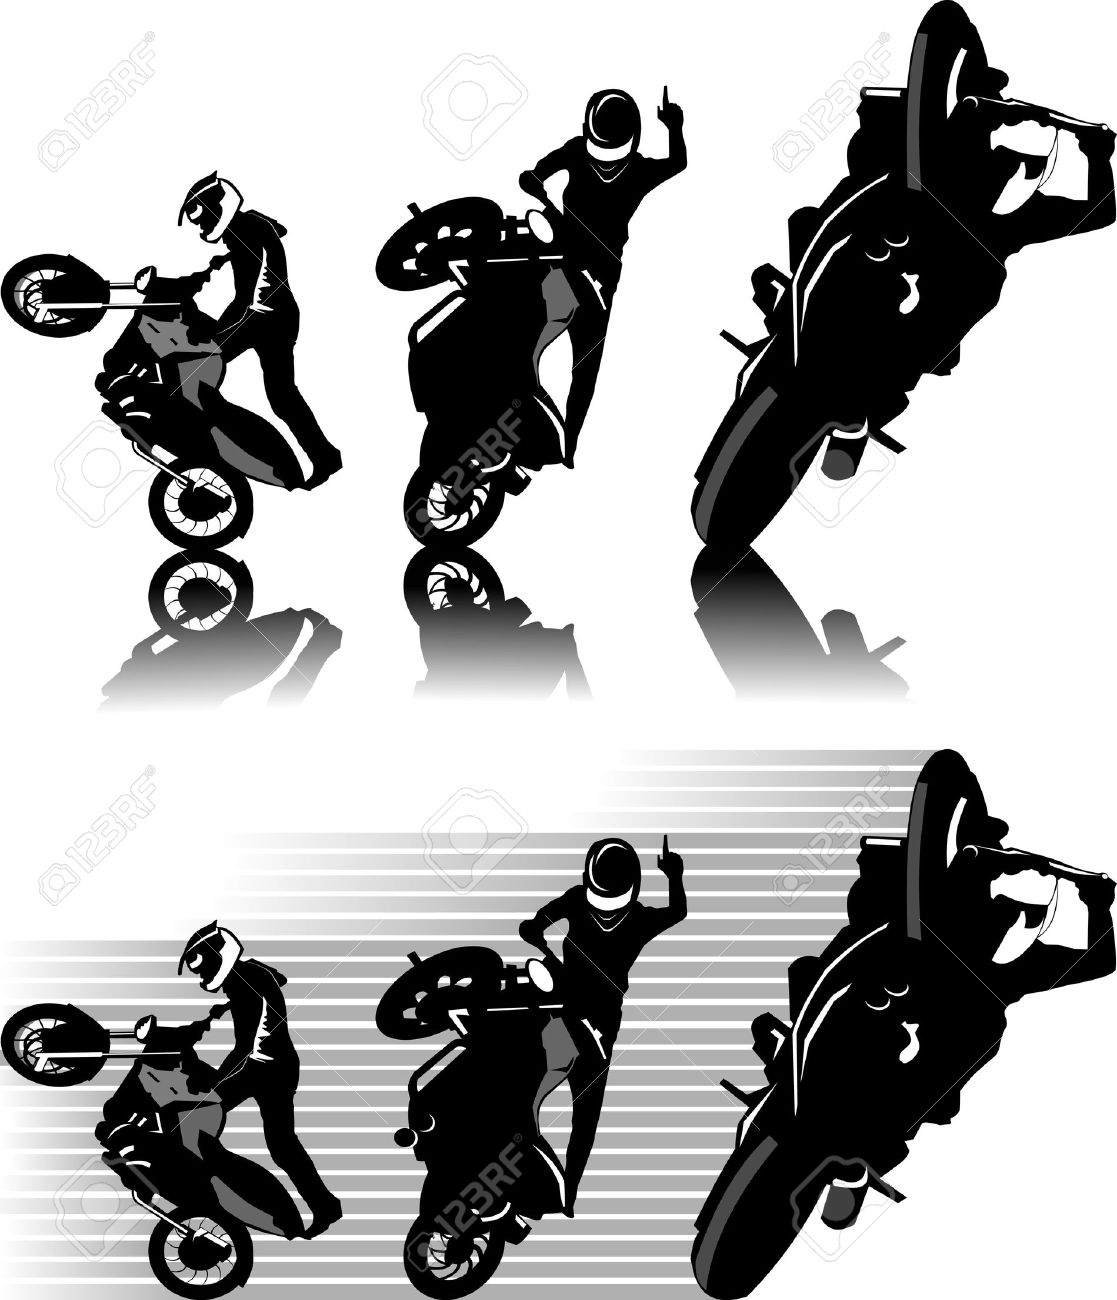 A silhouette of a motorcycle racer commits high jump; Stock Vector - 8730436